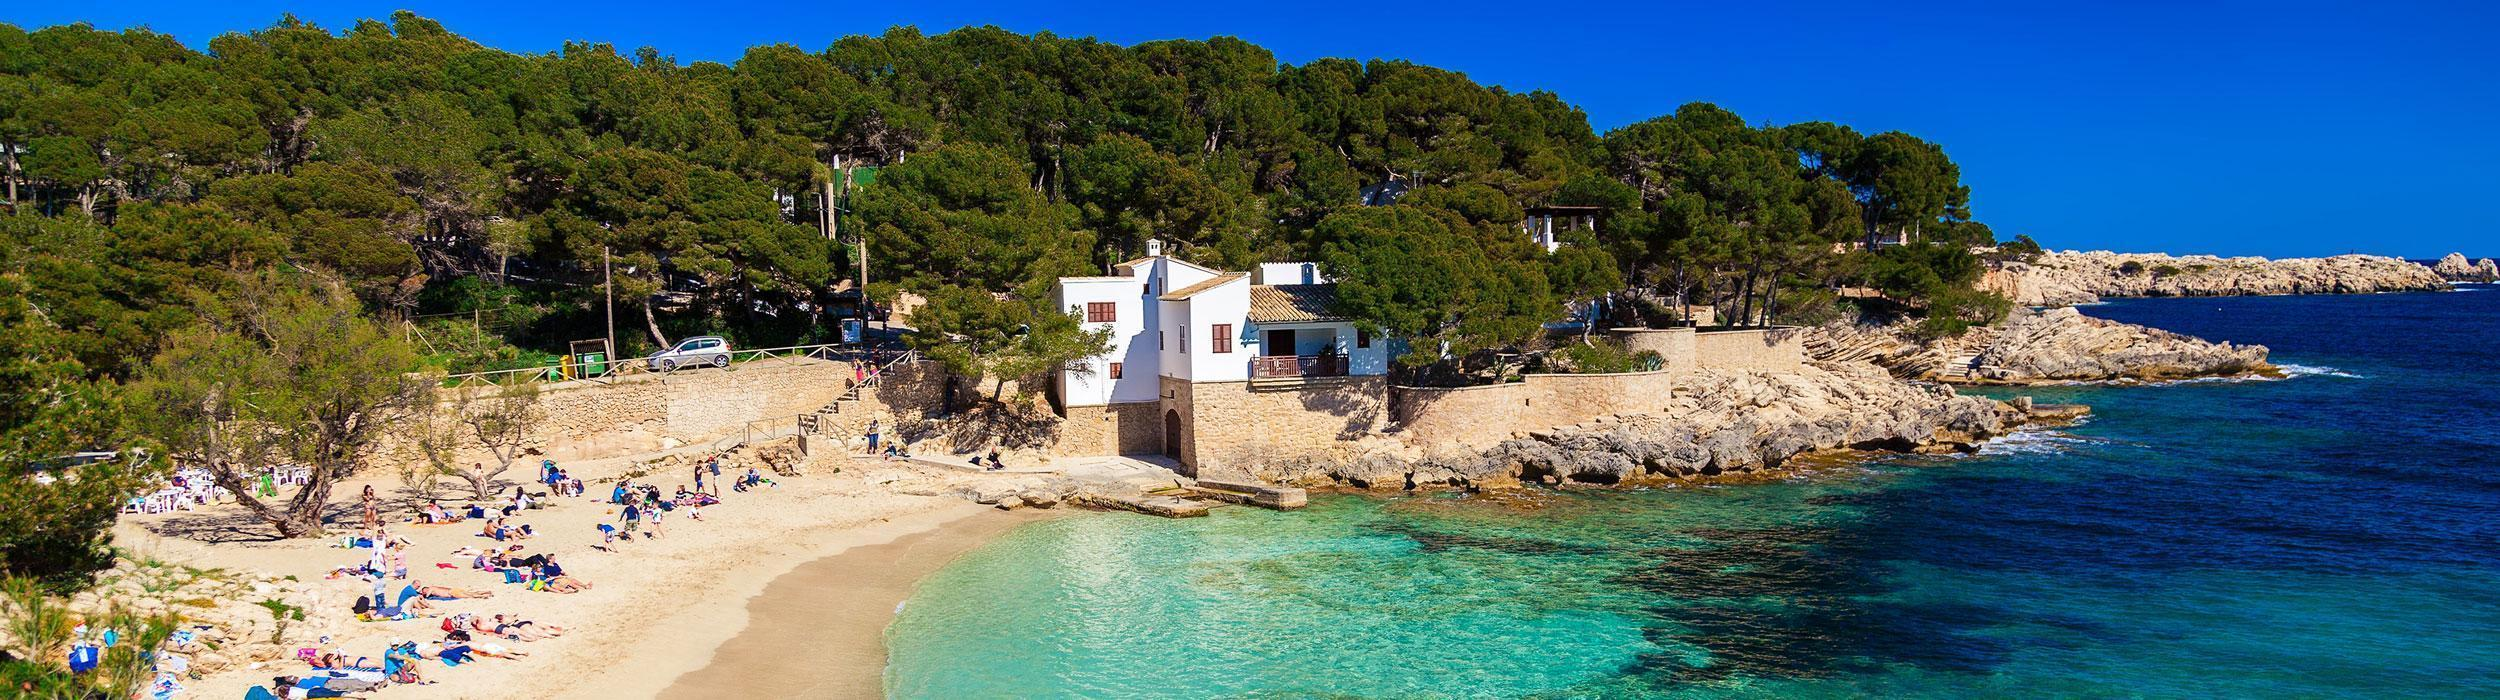 14 nights in Majorca departing 10th June, Flights from £369pp